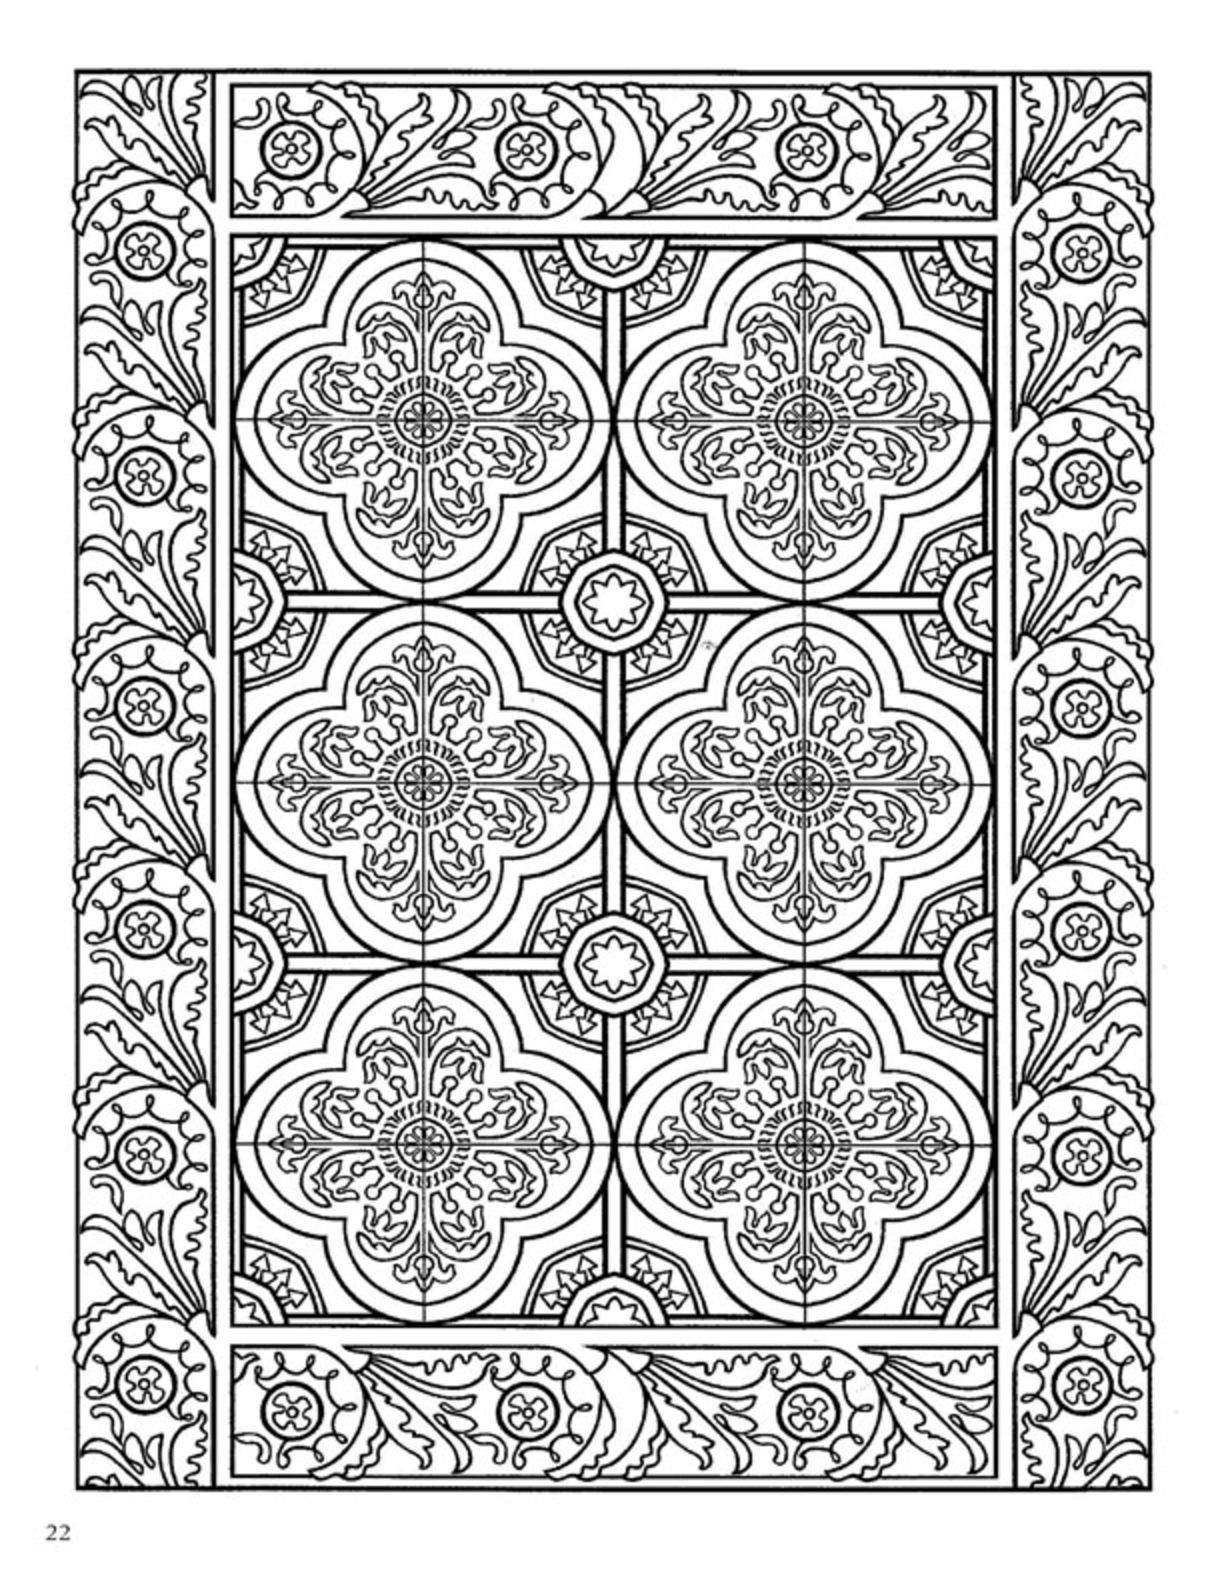 dover decorative tile coloring book patterns pinterest